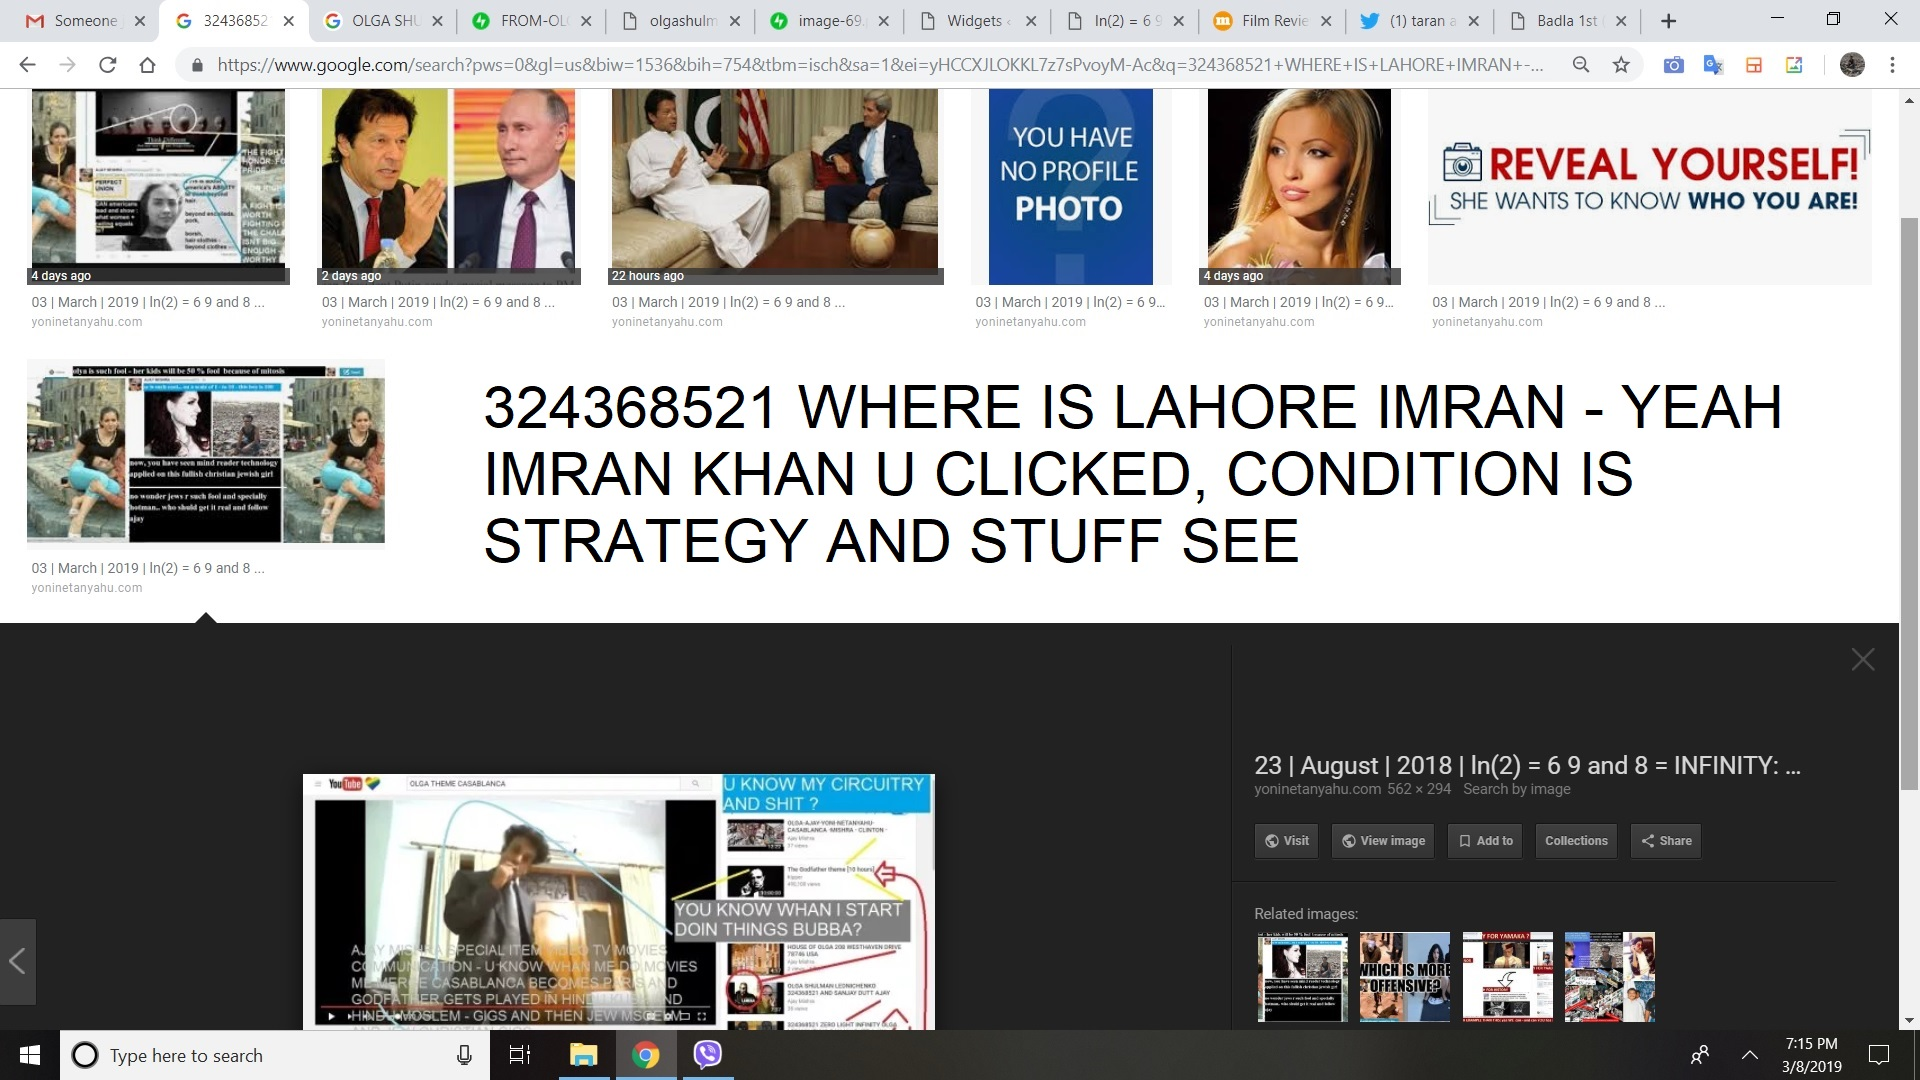 324368521 WHERE IS LAHORE IMRAN - YEAH IMRAN KHAN U CLICKED, CONDITION IS STRATEGY AND STUFF SEE